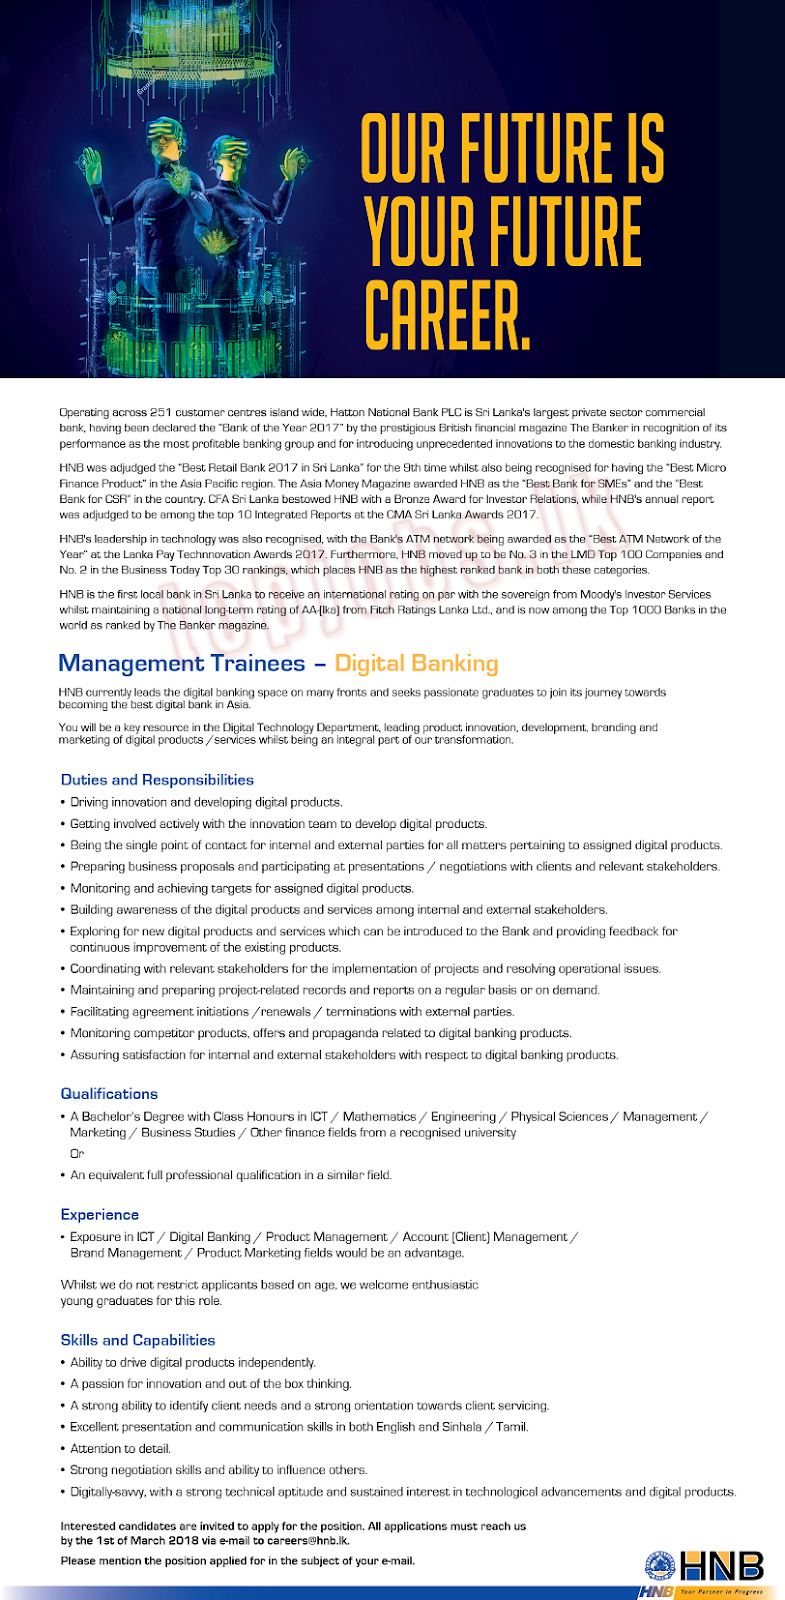 HNB Management Trainees - Digital Banking